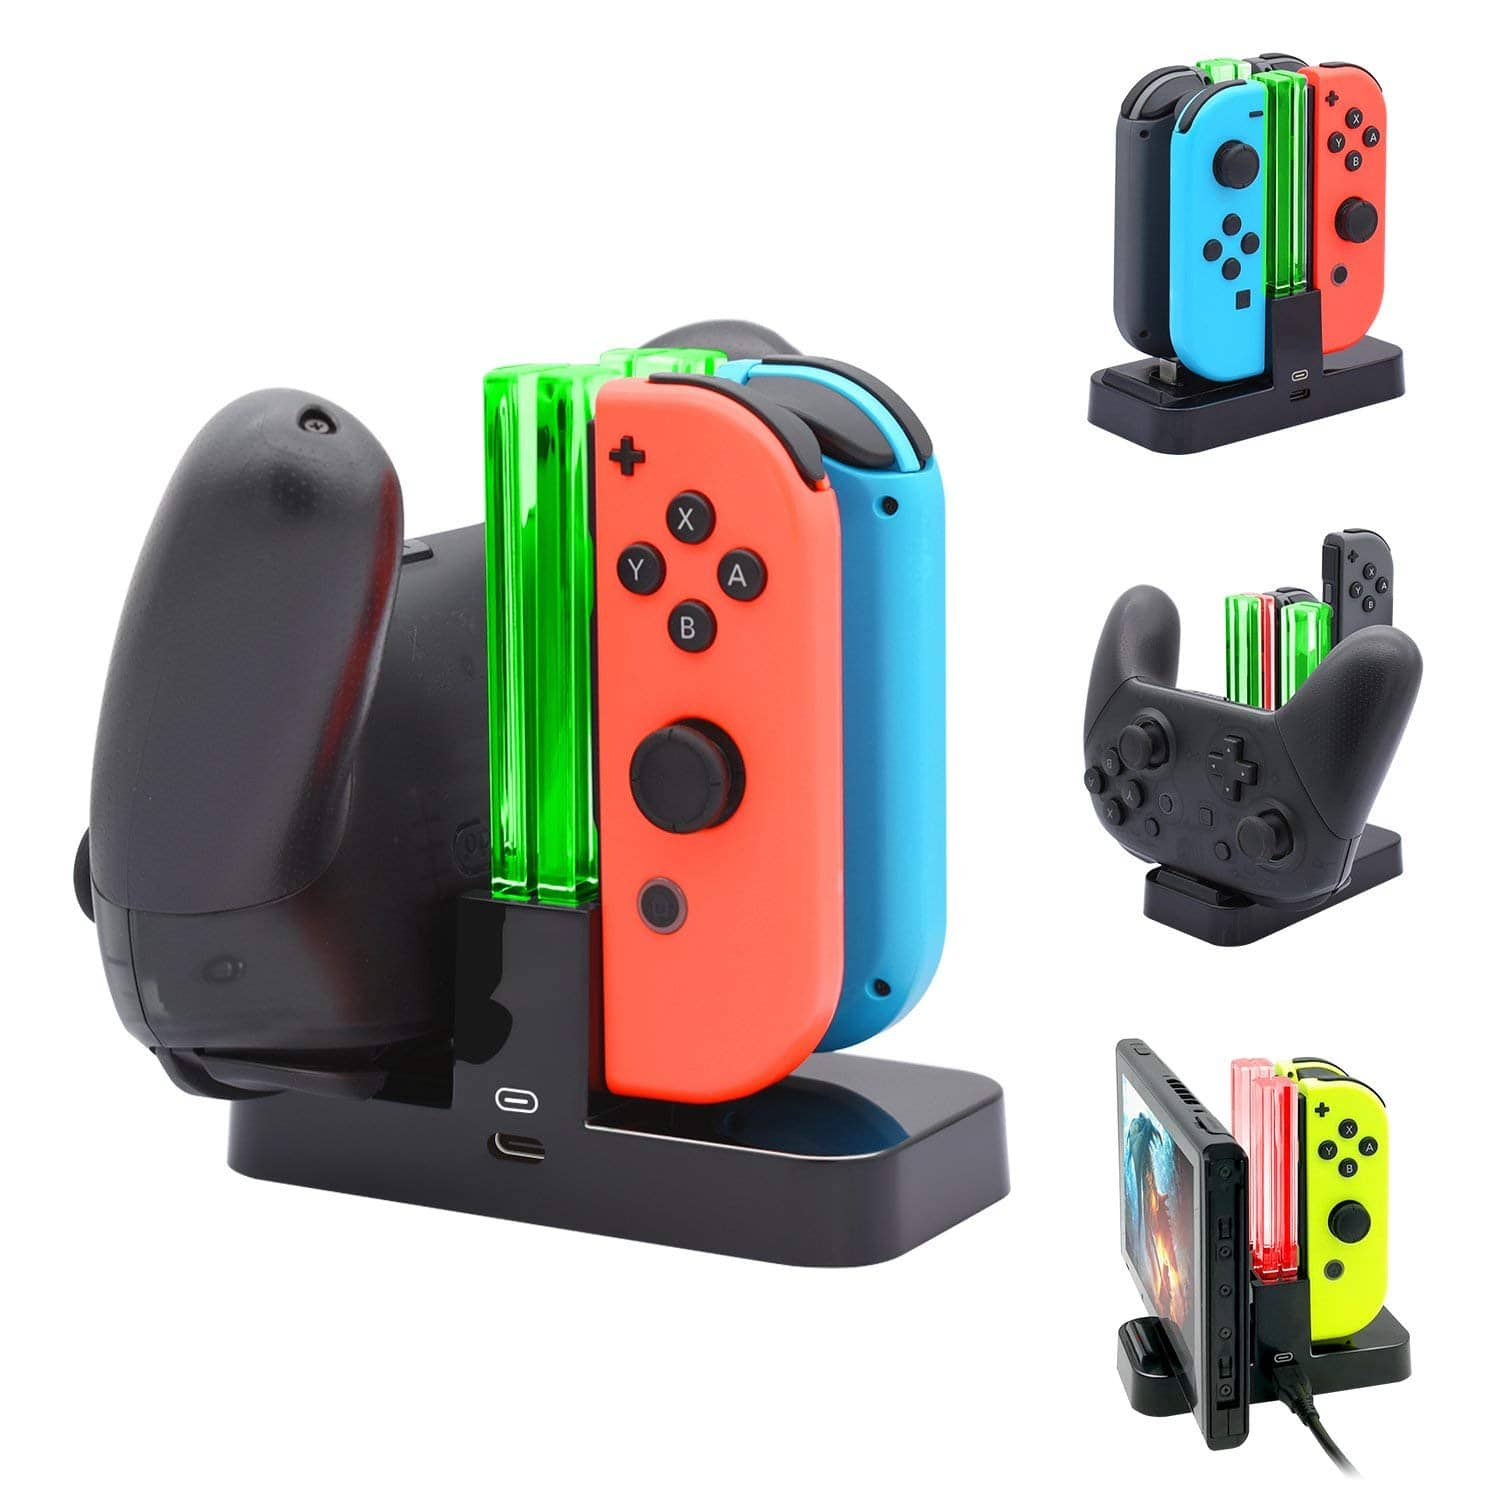 FastSnail Nintendo Switch Joy-Con & Pro Controller Charger